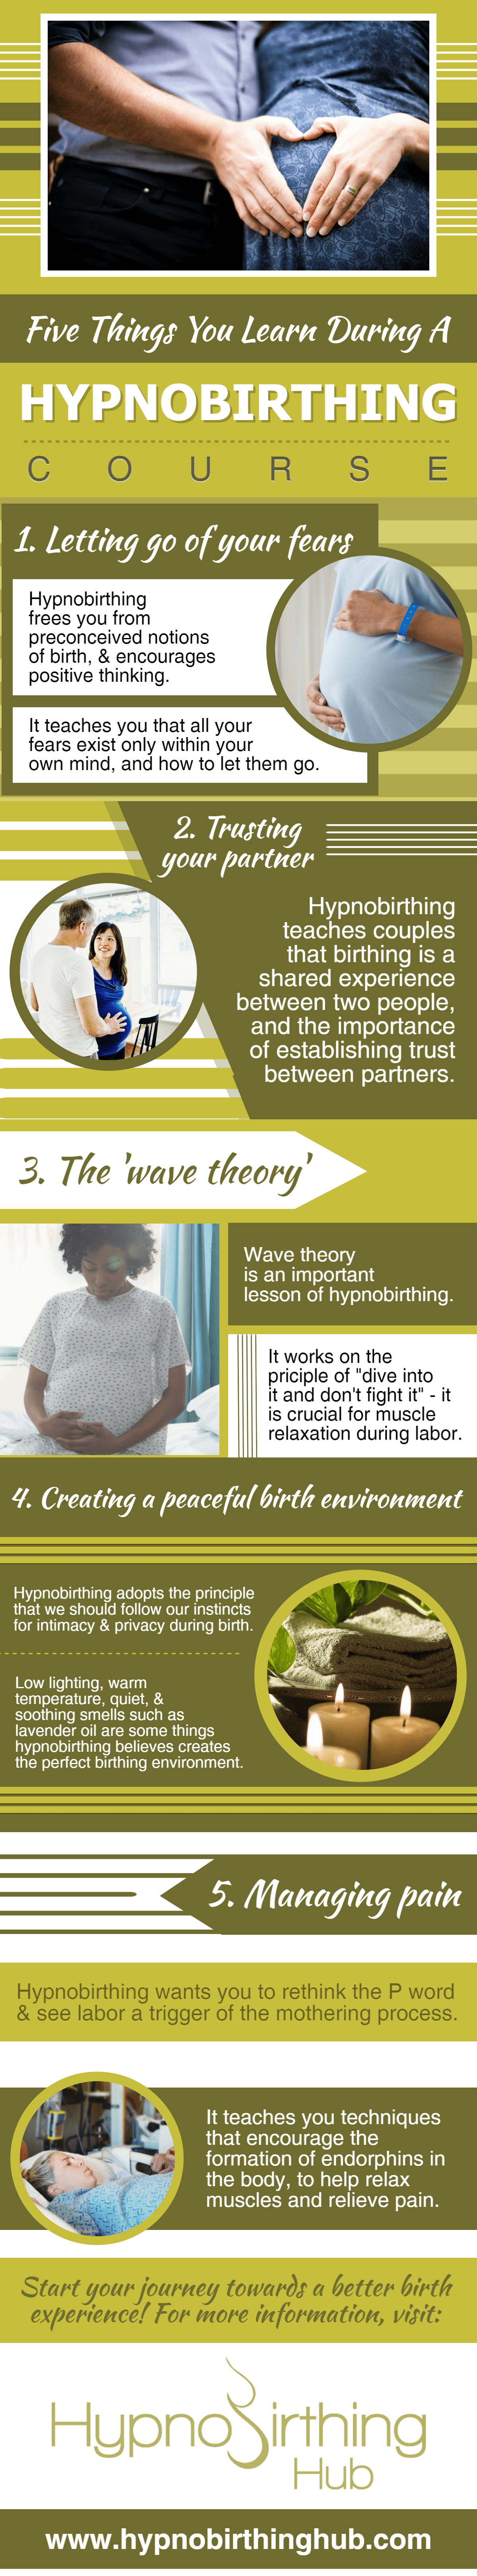 5 Things You Should Learn During A Hypnobirthing Course Infographic